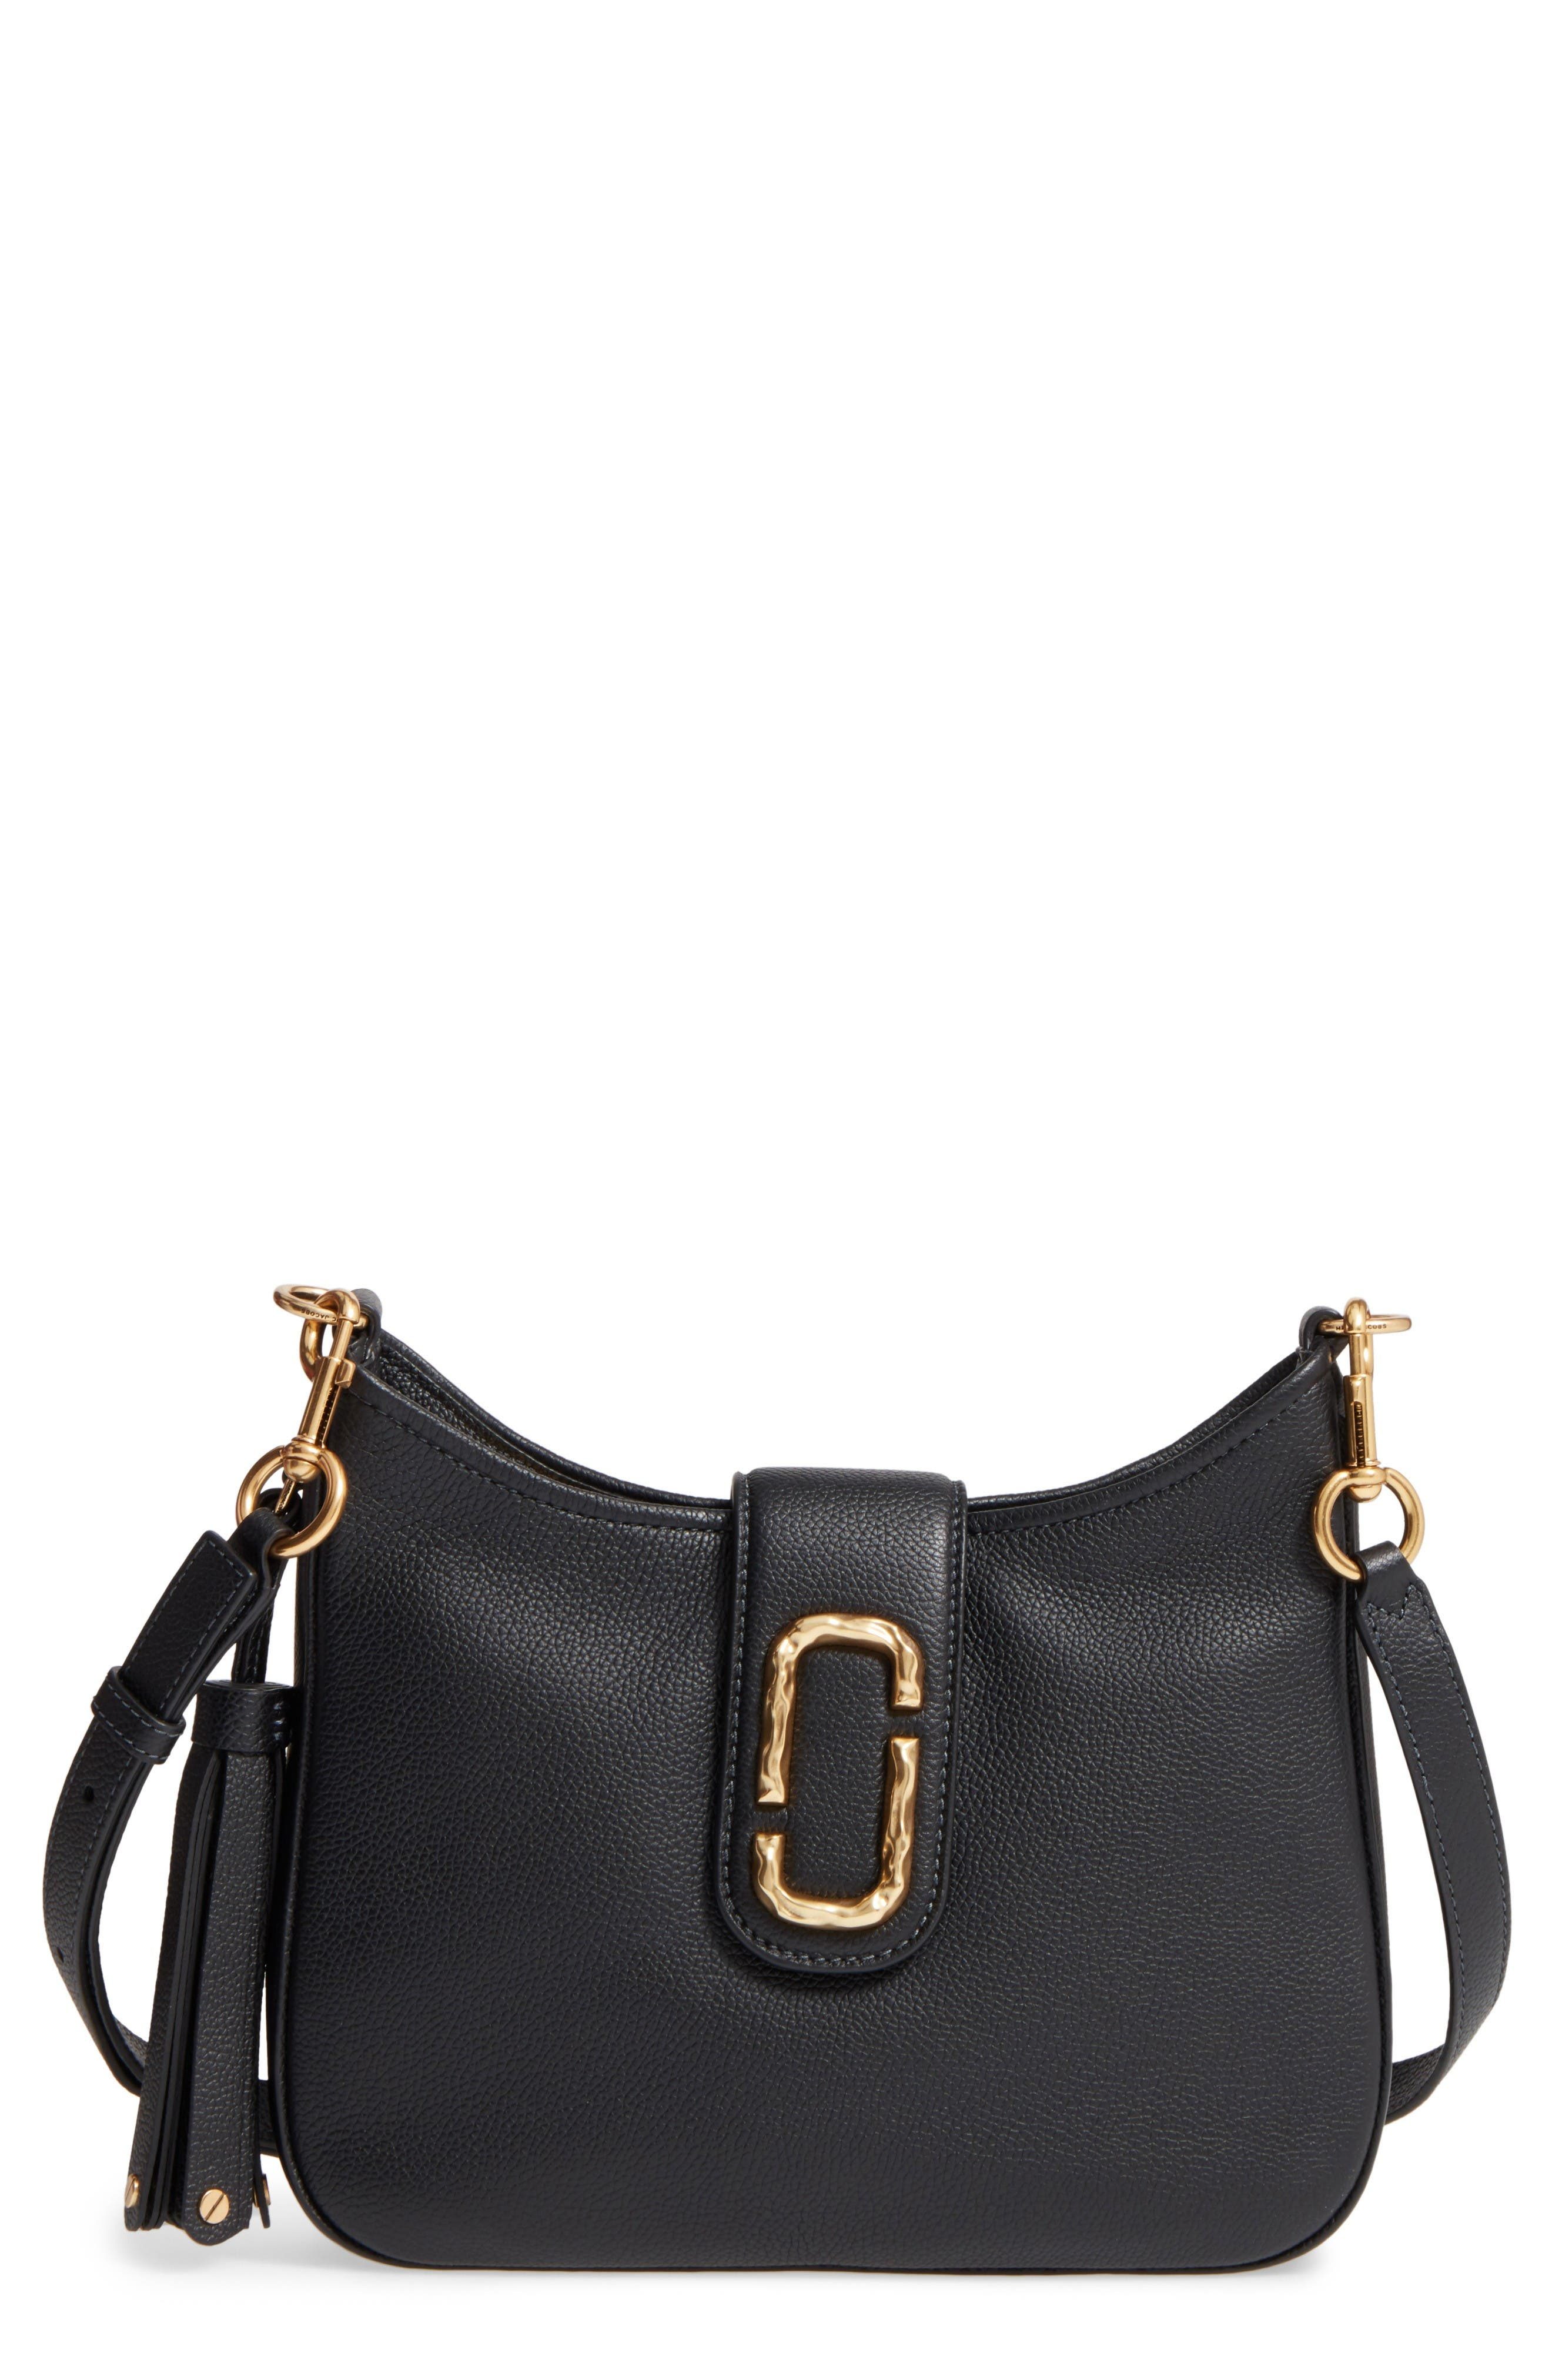 Main Image - MARC JACOBS Small Interlock Leather Hobo